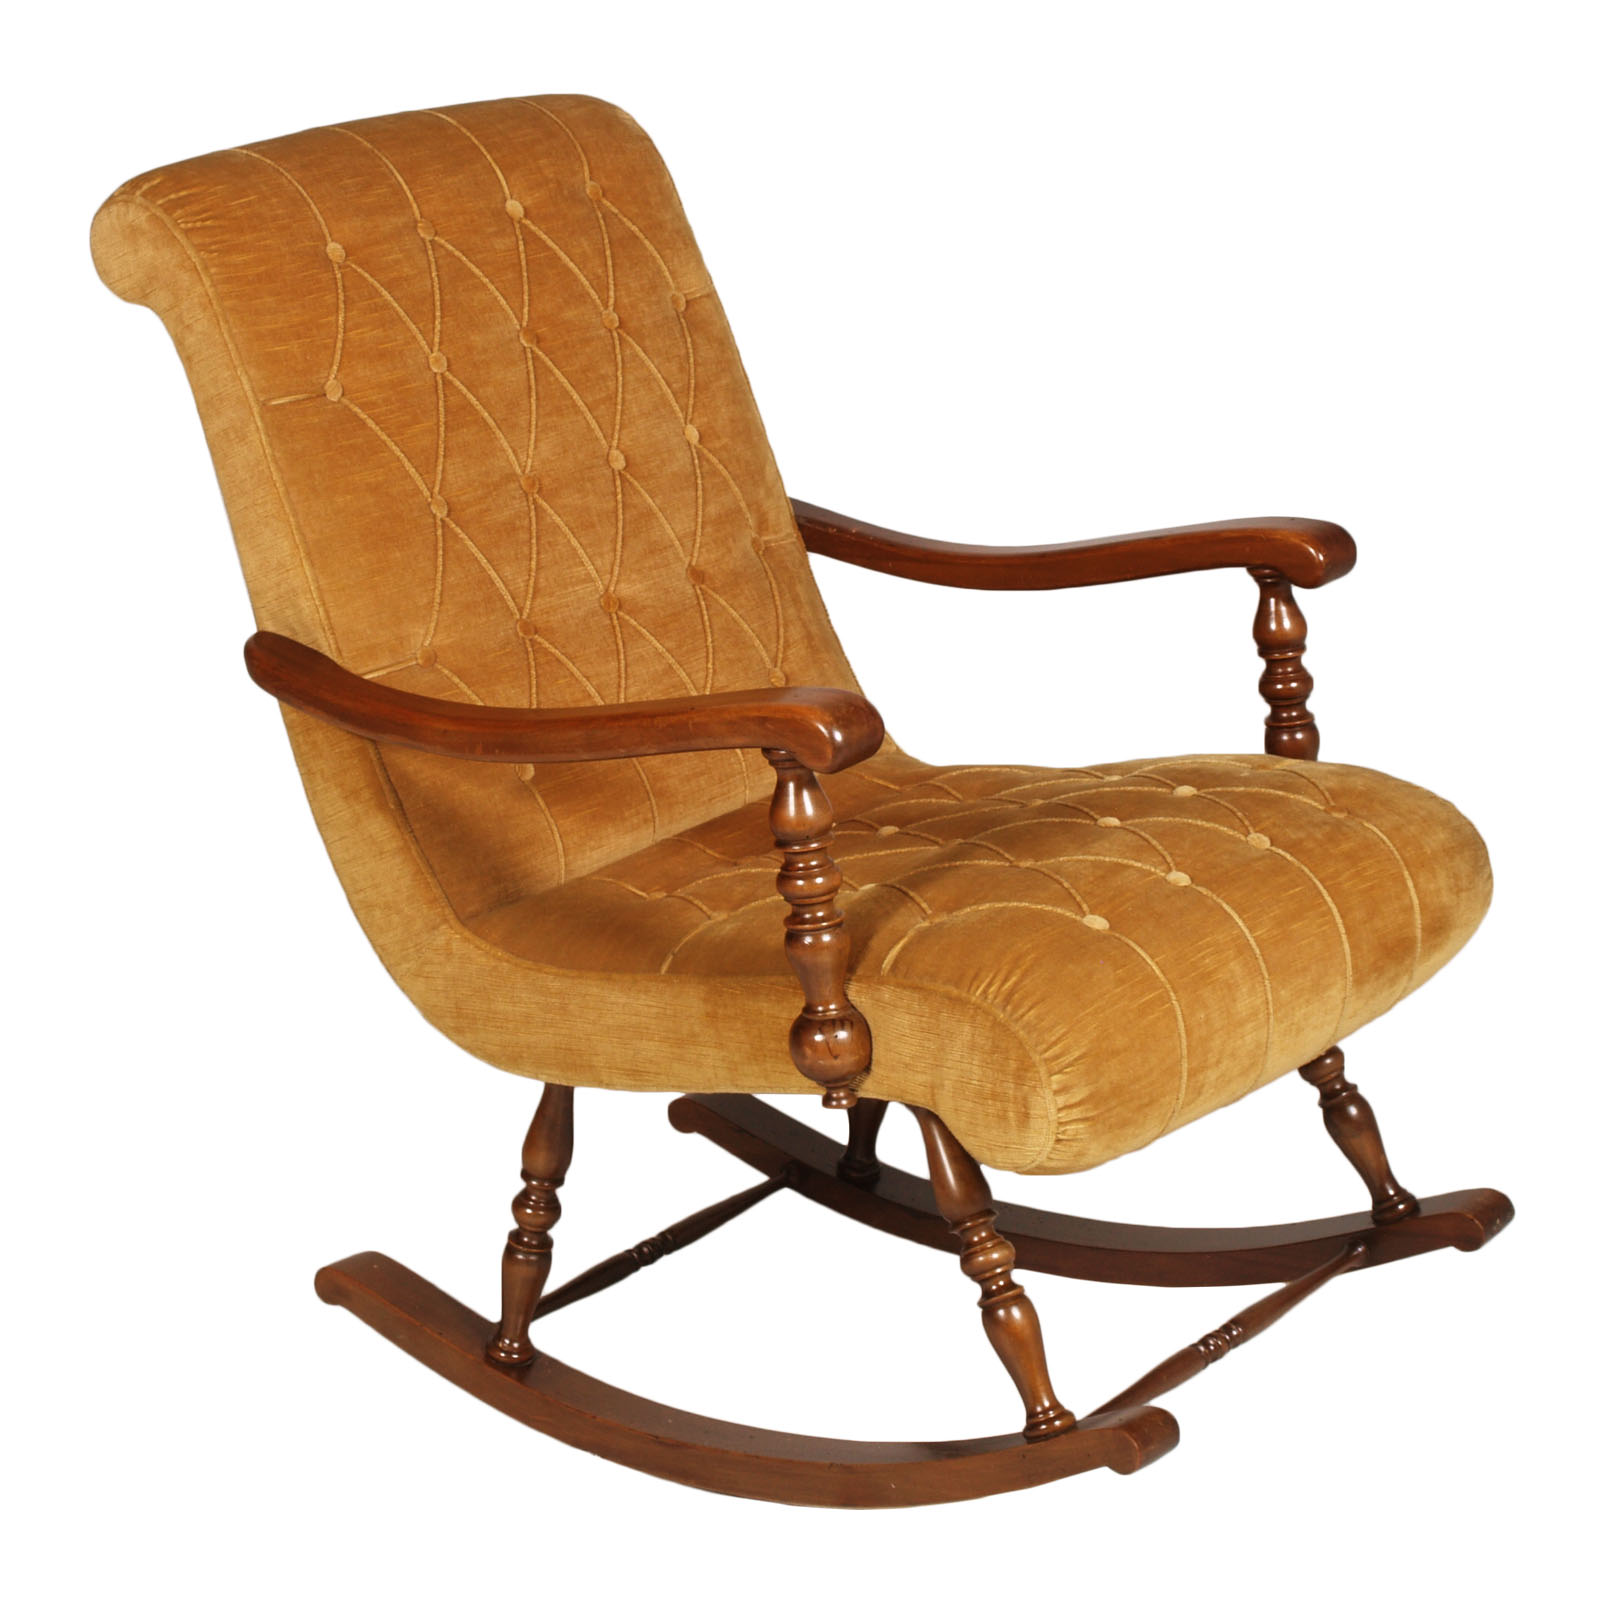 Sedia Dondolo In Francese Dettagli Su Poltrona Sedia Dondolo Noce Tornito 1940s Victorian Turned Rocking Chair Ma S93